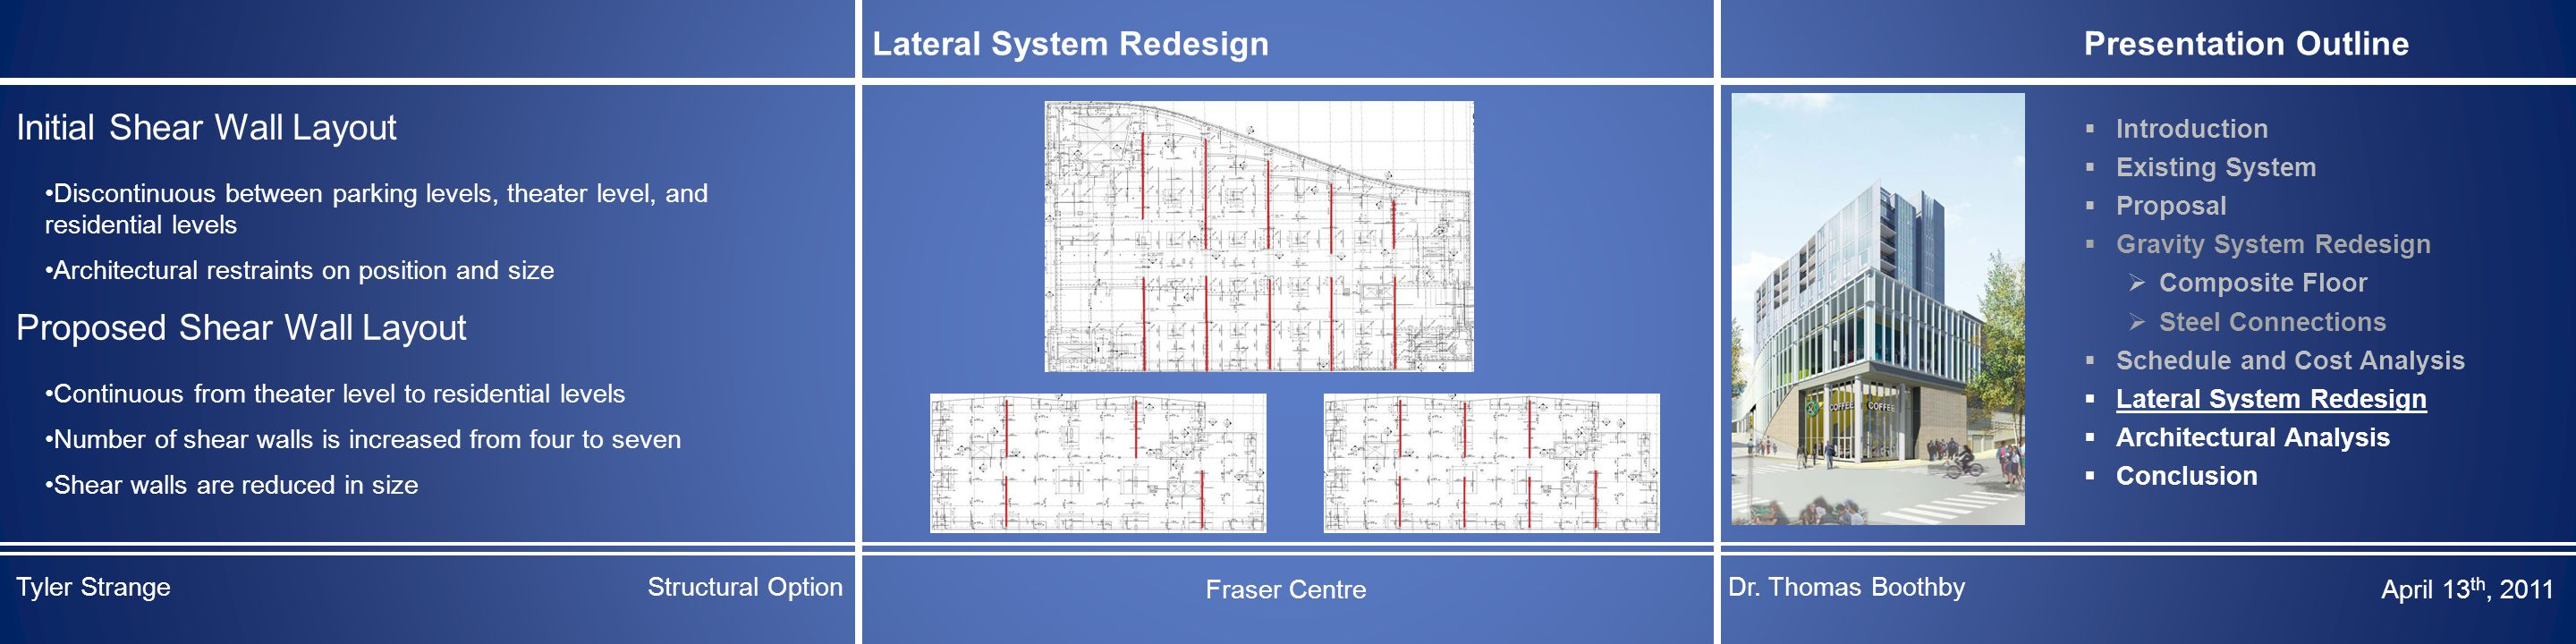 Lateral System Redesign Presentation Outline  Introduction  Existing System  Proposal  Gravity System Redesign  Composite Floor  Steel Connections  Schedule and Cost Analysis  Lateral System Redesign  Architectural Analysis  Conclusion Initial Shear Wall Layout Discontinuous between parking levels, theater level, and residential levels Architectural restraints on position and size Proposed Shear Wall Layout Continuous from theater level to residential levels Number of shear walls is increased from four to seven Shear walls are reduced in size Tyler StrangeStructural Option Fraser Centre Dr.